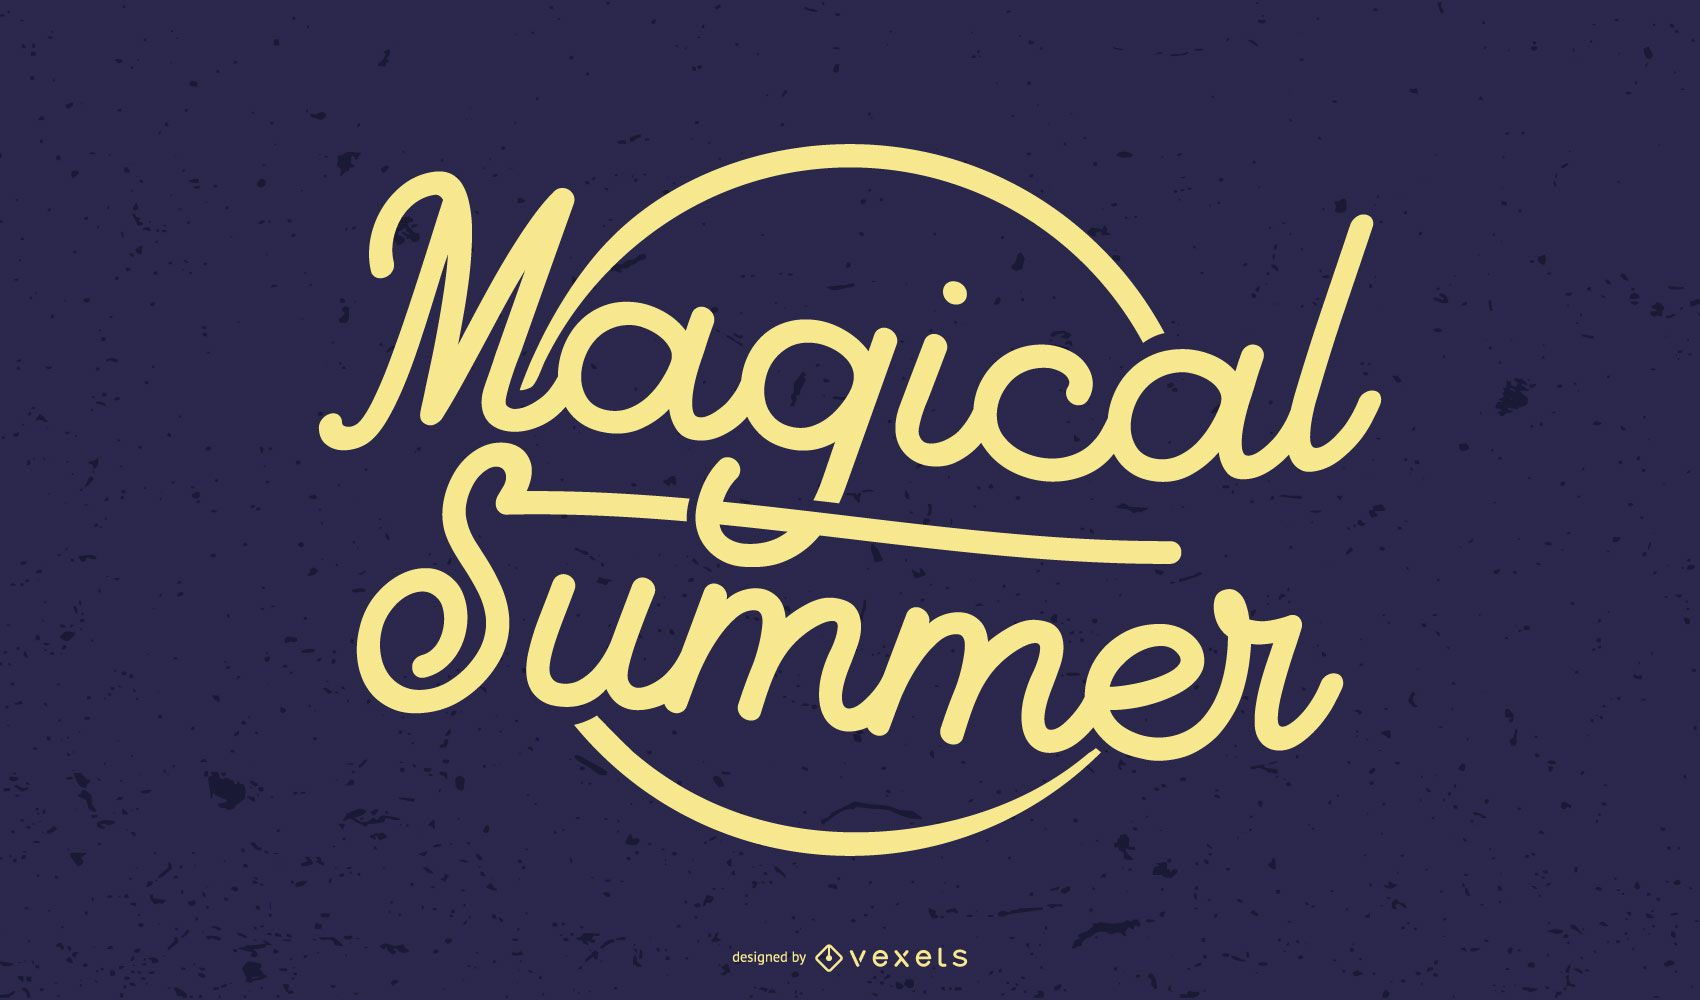 Magical summer graphic title